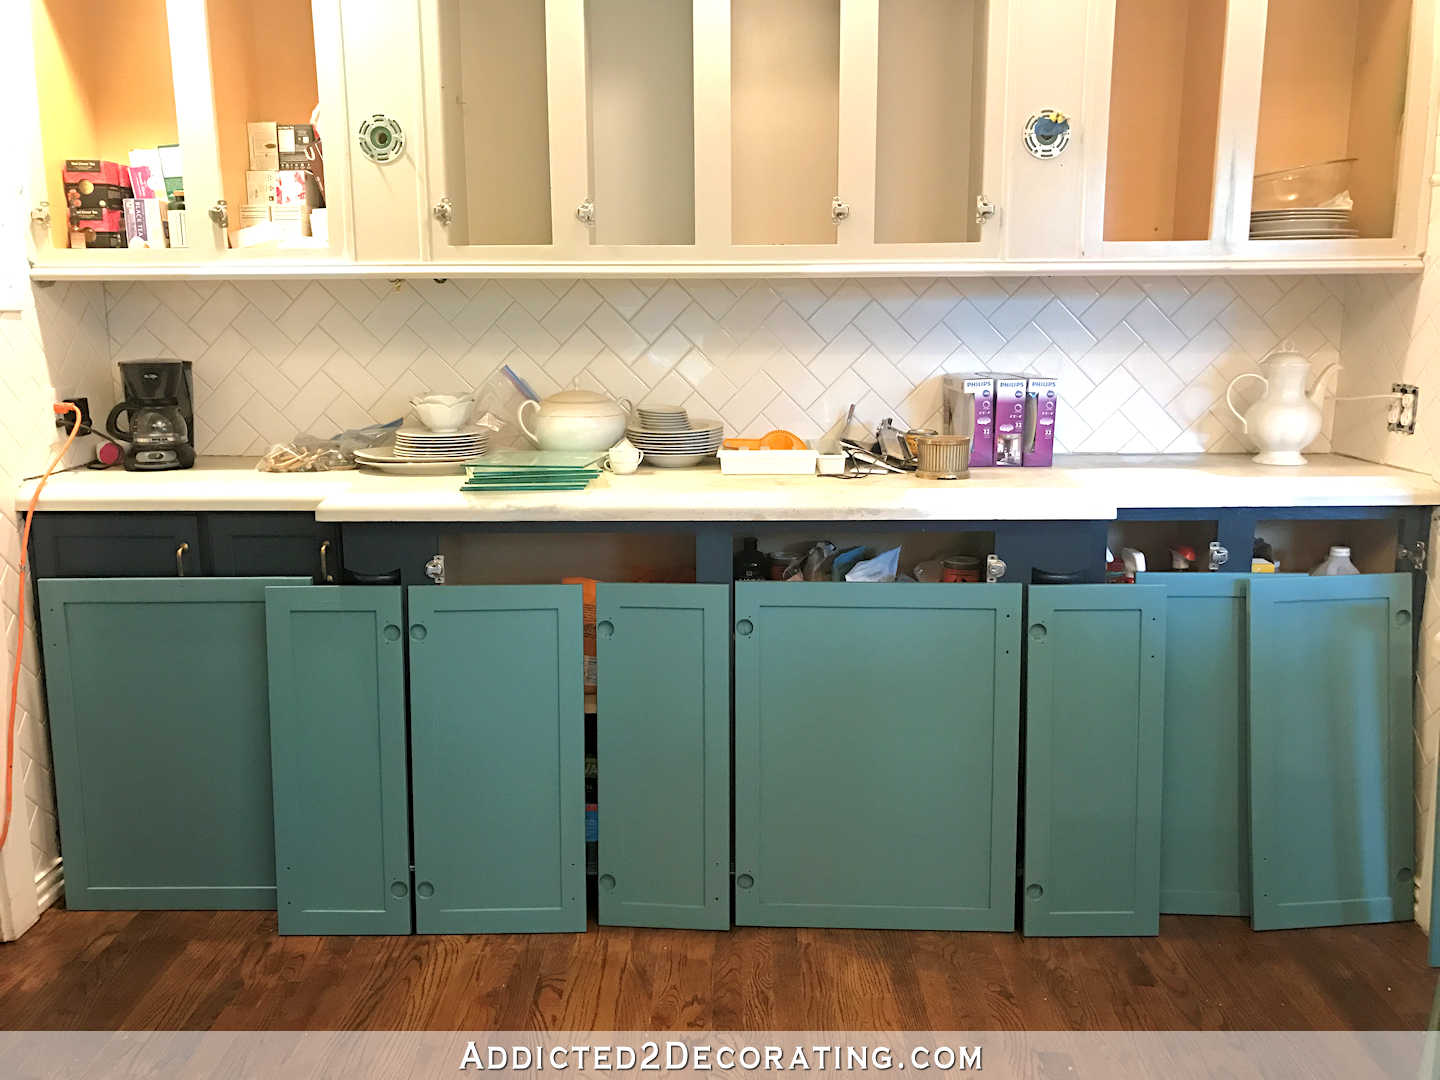 Painting Kitchen Cabinets Long Island Breakfast Room Decorating On My Mind